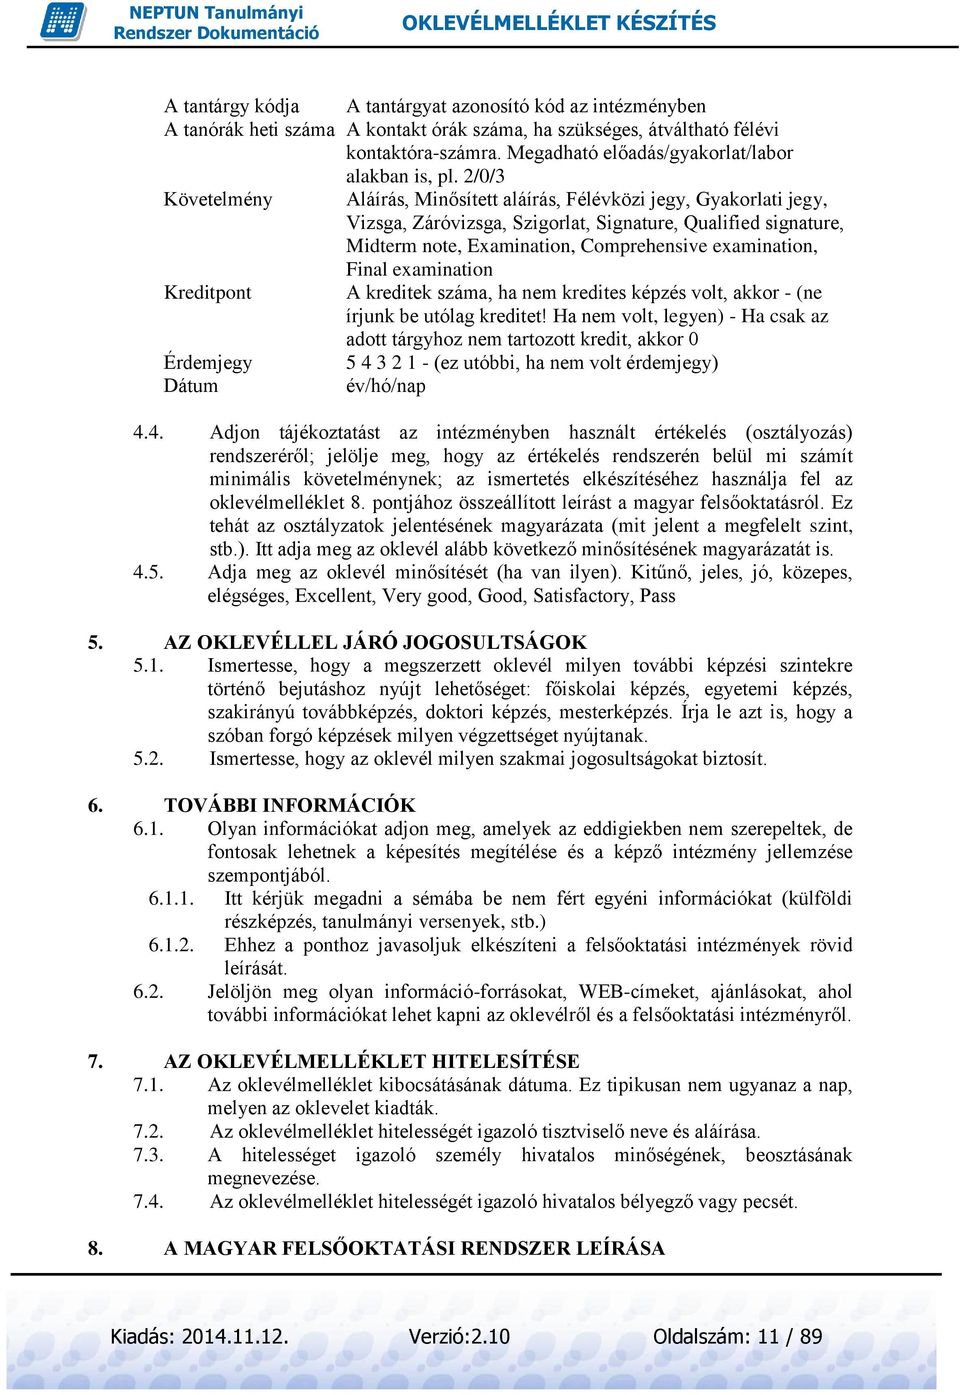 2/0/3 Követelmény Aláírás, Minősített aláírás, Félévközi jegy, Gyakorlati jegy, Vizsga, Záróvizsga, Szigorlat, Signature, Qualified signature, Midterm note, Examination, Comprehensive examination,